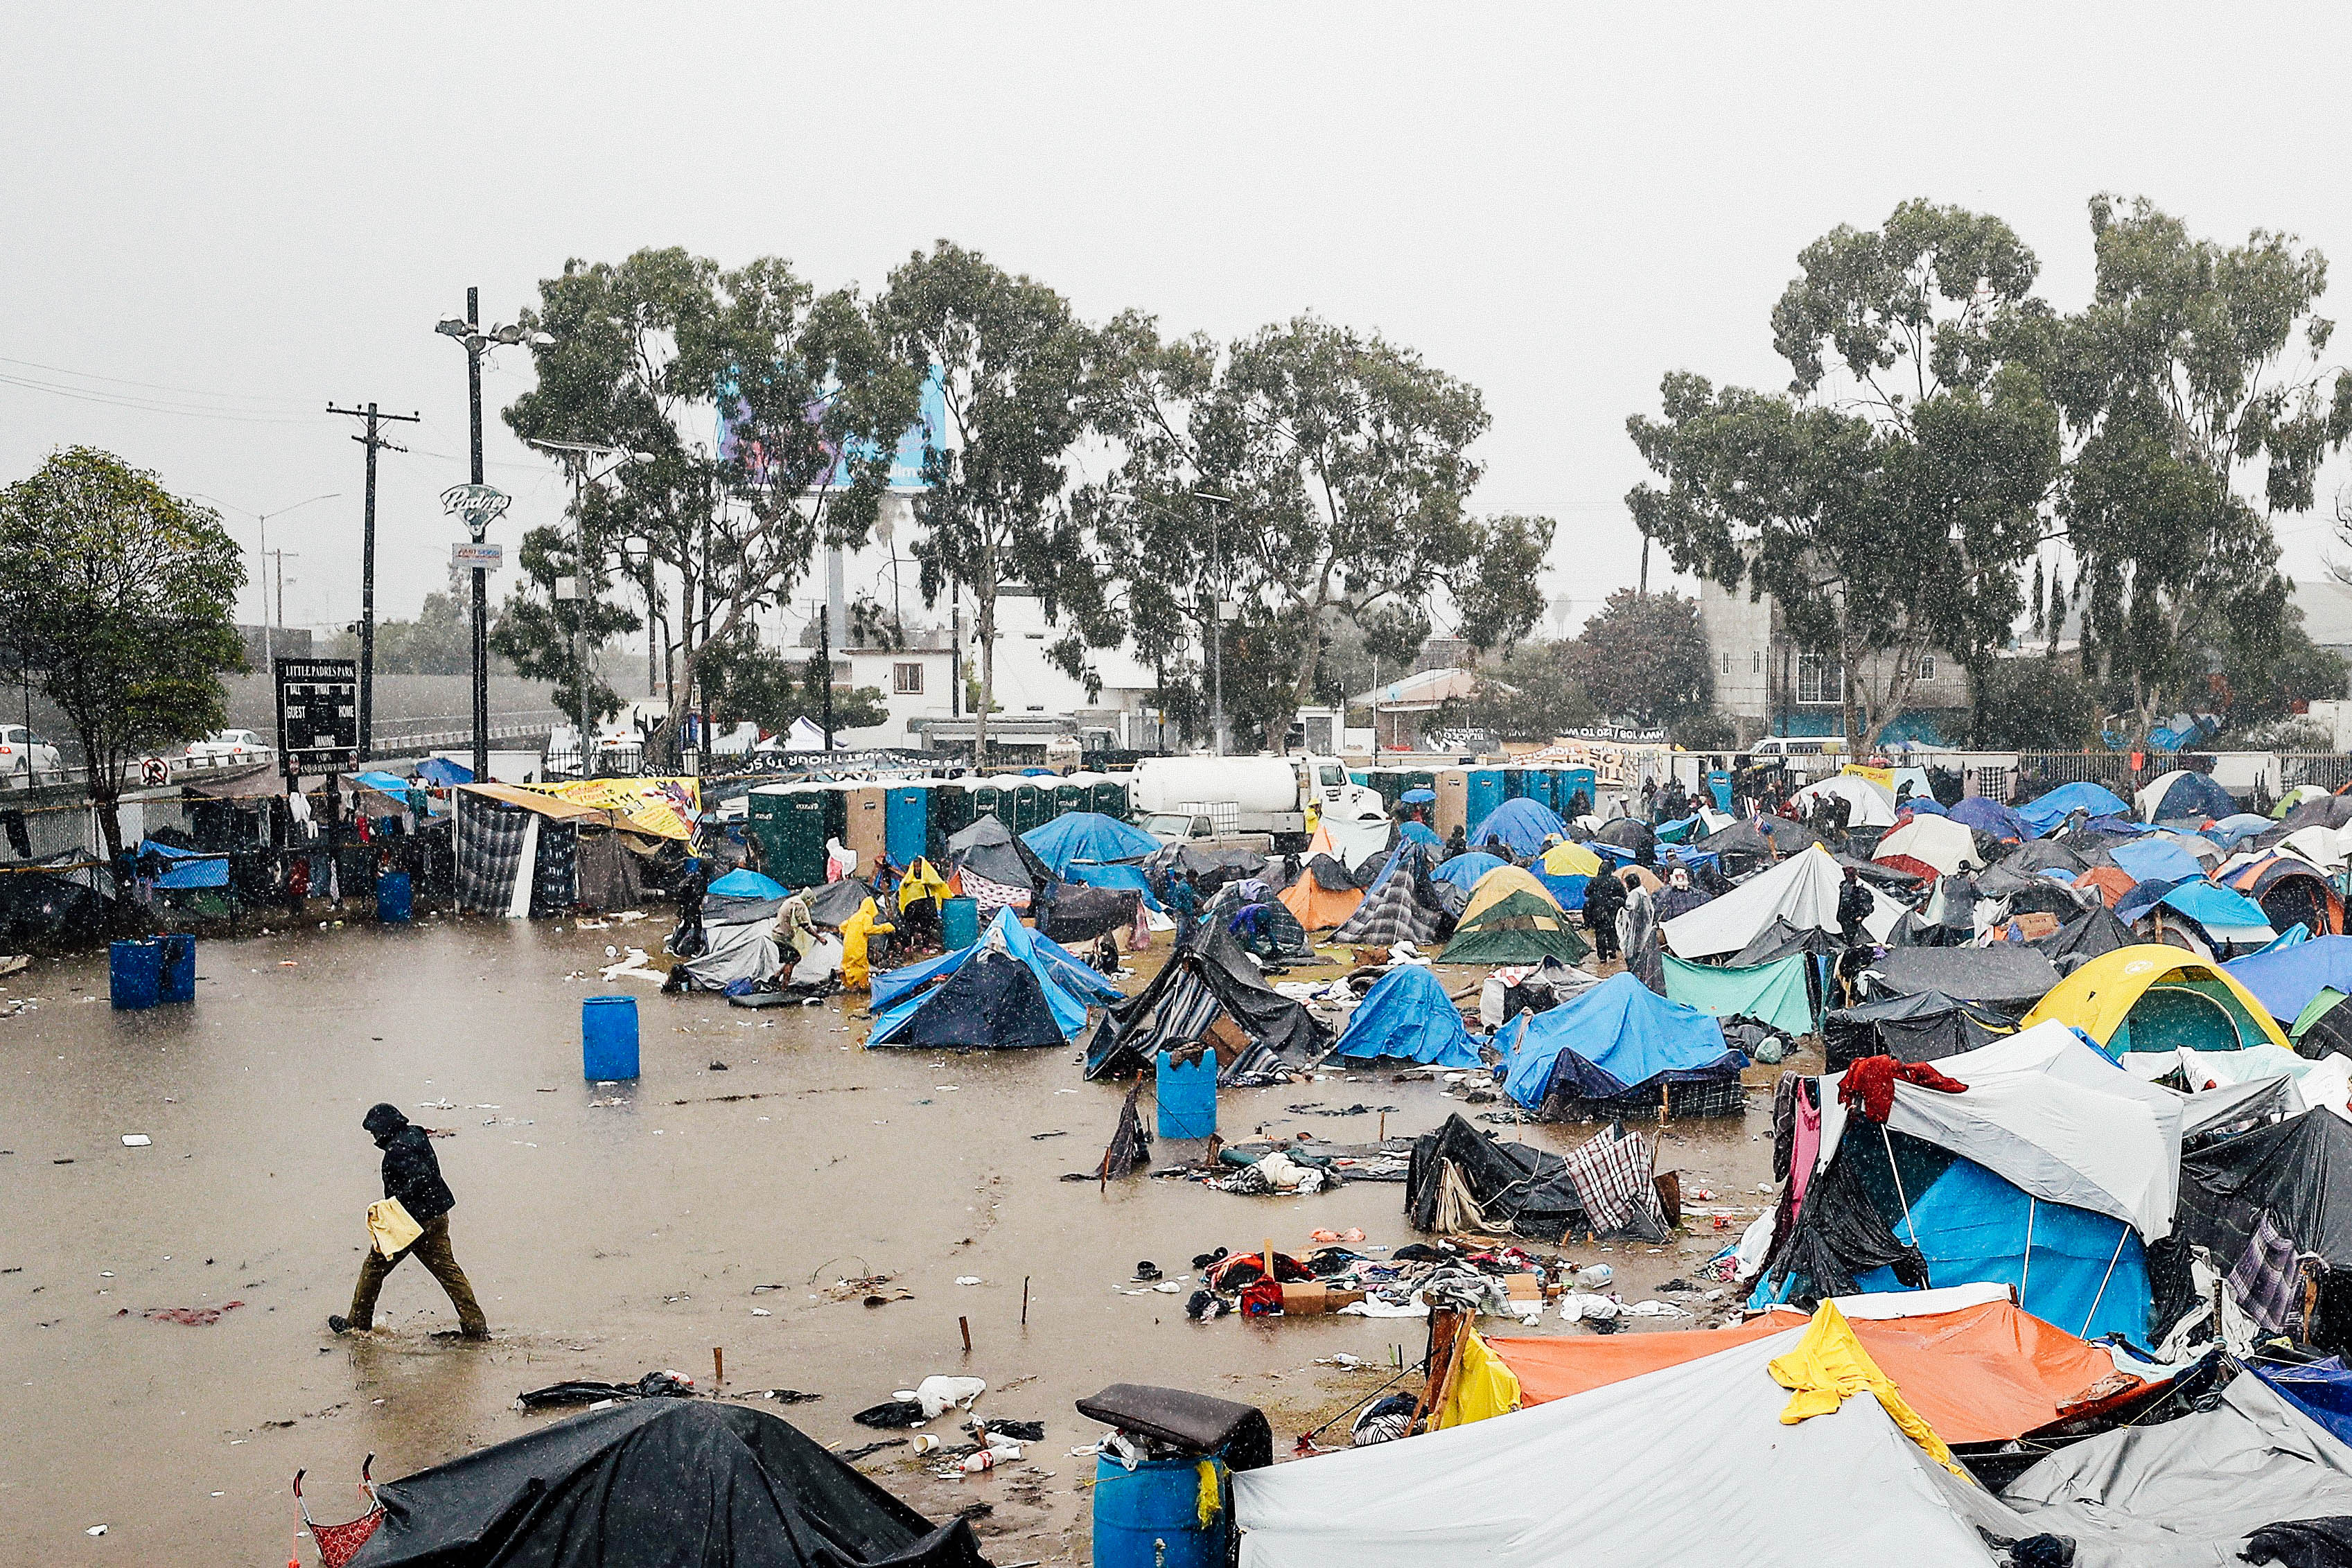 A person walks through a tent encampment flooded by rain.